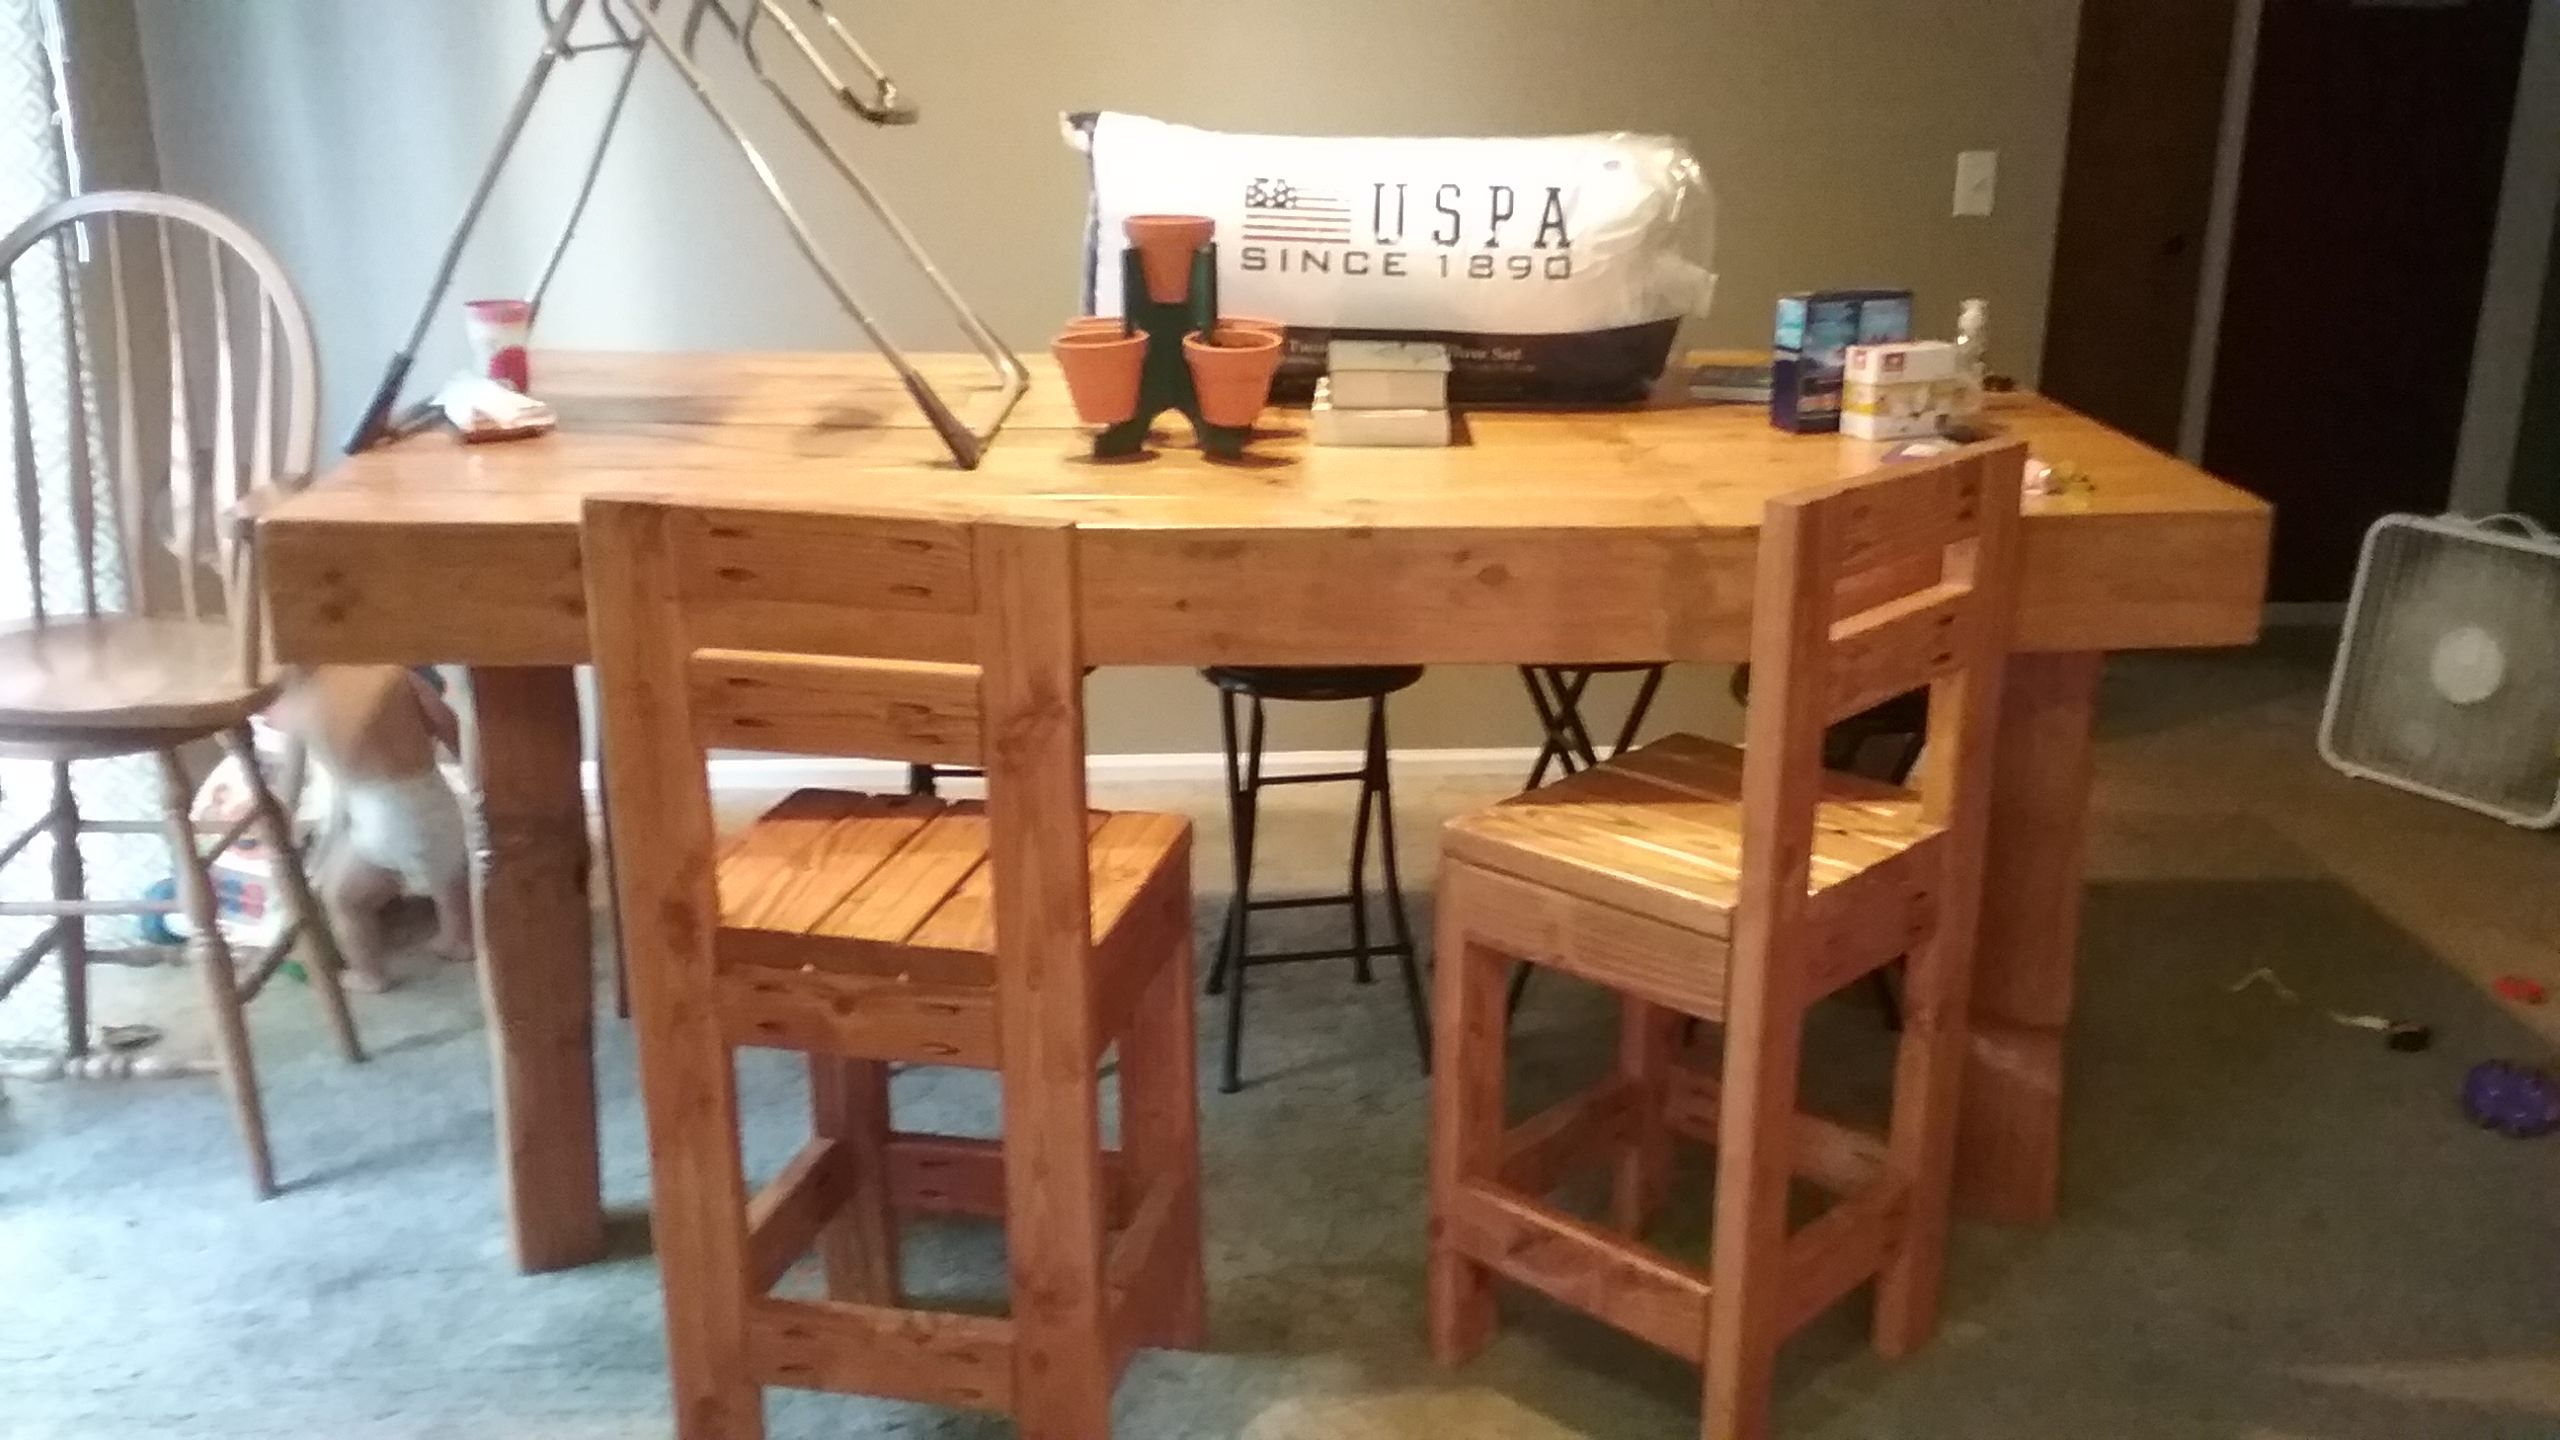 This pallet is the type that is used to deliver steel on i used those large long boards to make this big beautiful pallet kitchen table set